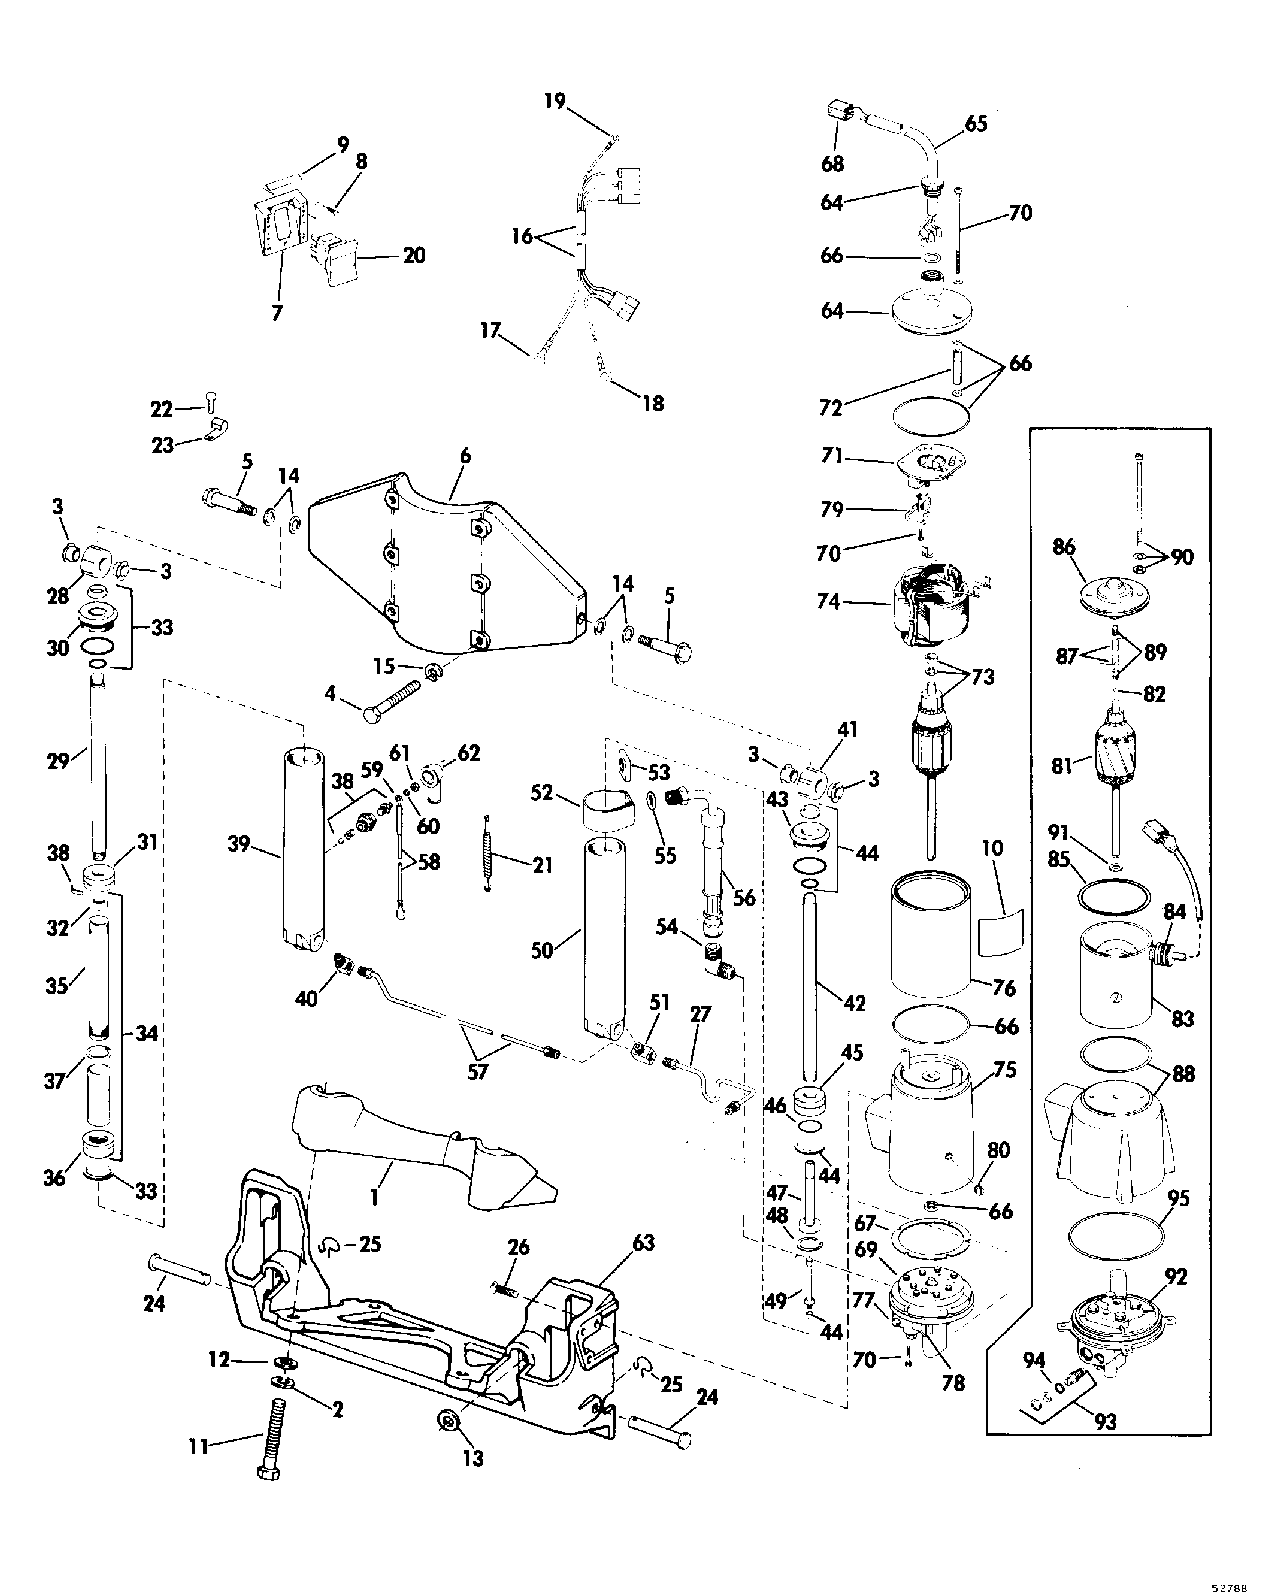 Ford Tractor Hydraulic Pump Diagrams further 3q1j9 Ive Just Bought 1996 Dodge 2500 Diesel I6 5 9l 4x4 Truck in addition Dump Truck Hydraulic System further Chevy 4 3 5 7l Vortec Engine Wont Start Unless Spray Starting Fluid Down Throttle Body  1472 further 4gj4h Ford Explorer Sport Trac Hello Engine Light. on starter crank fuel shutoff solenoid wiring